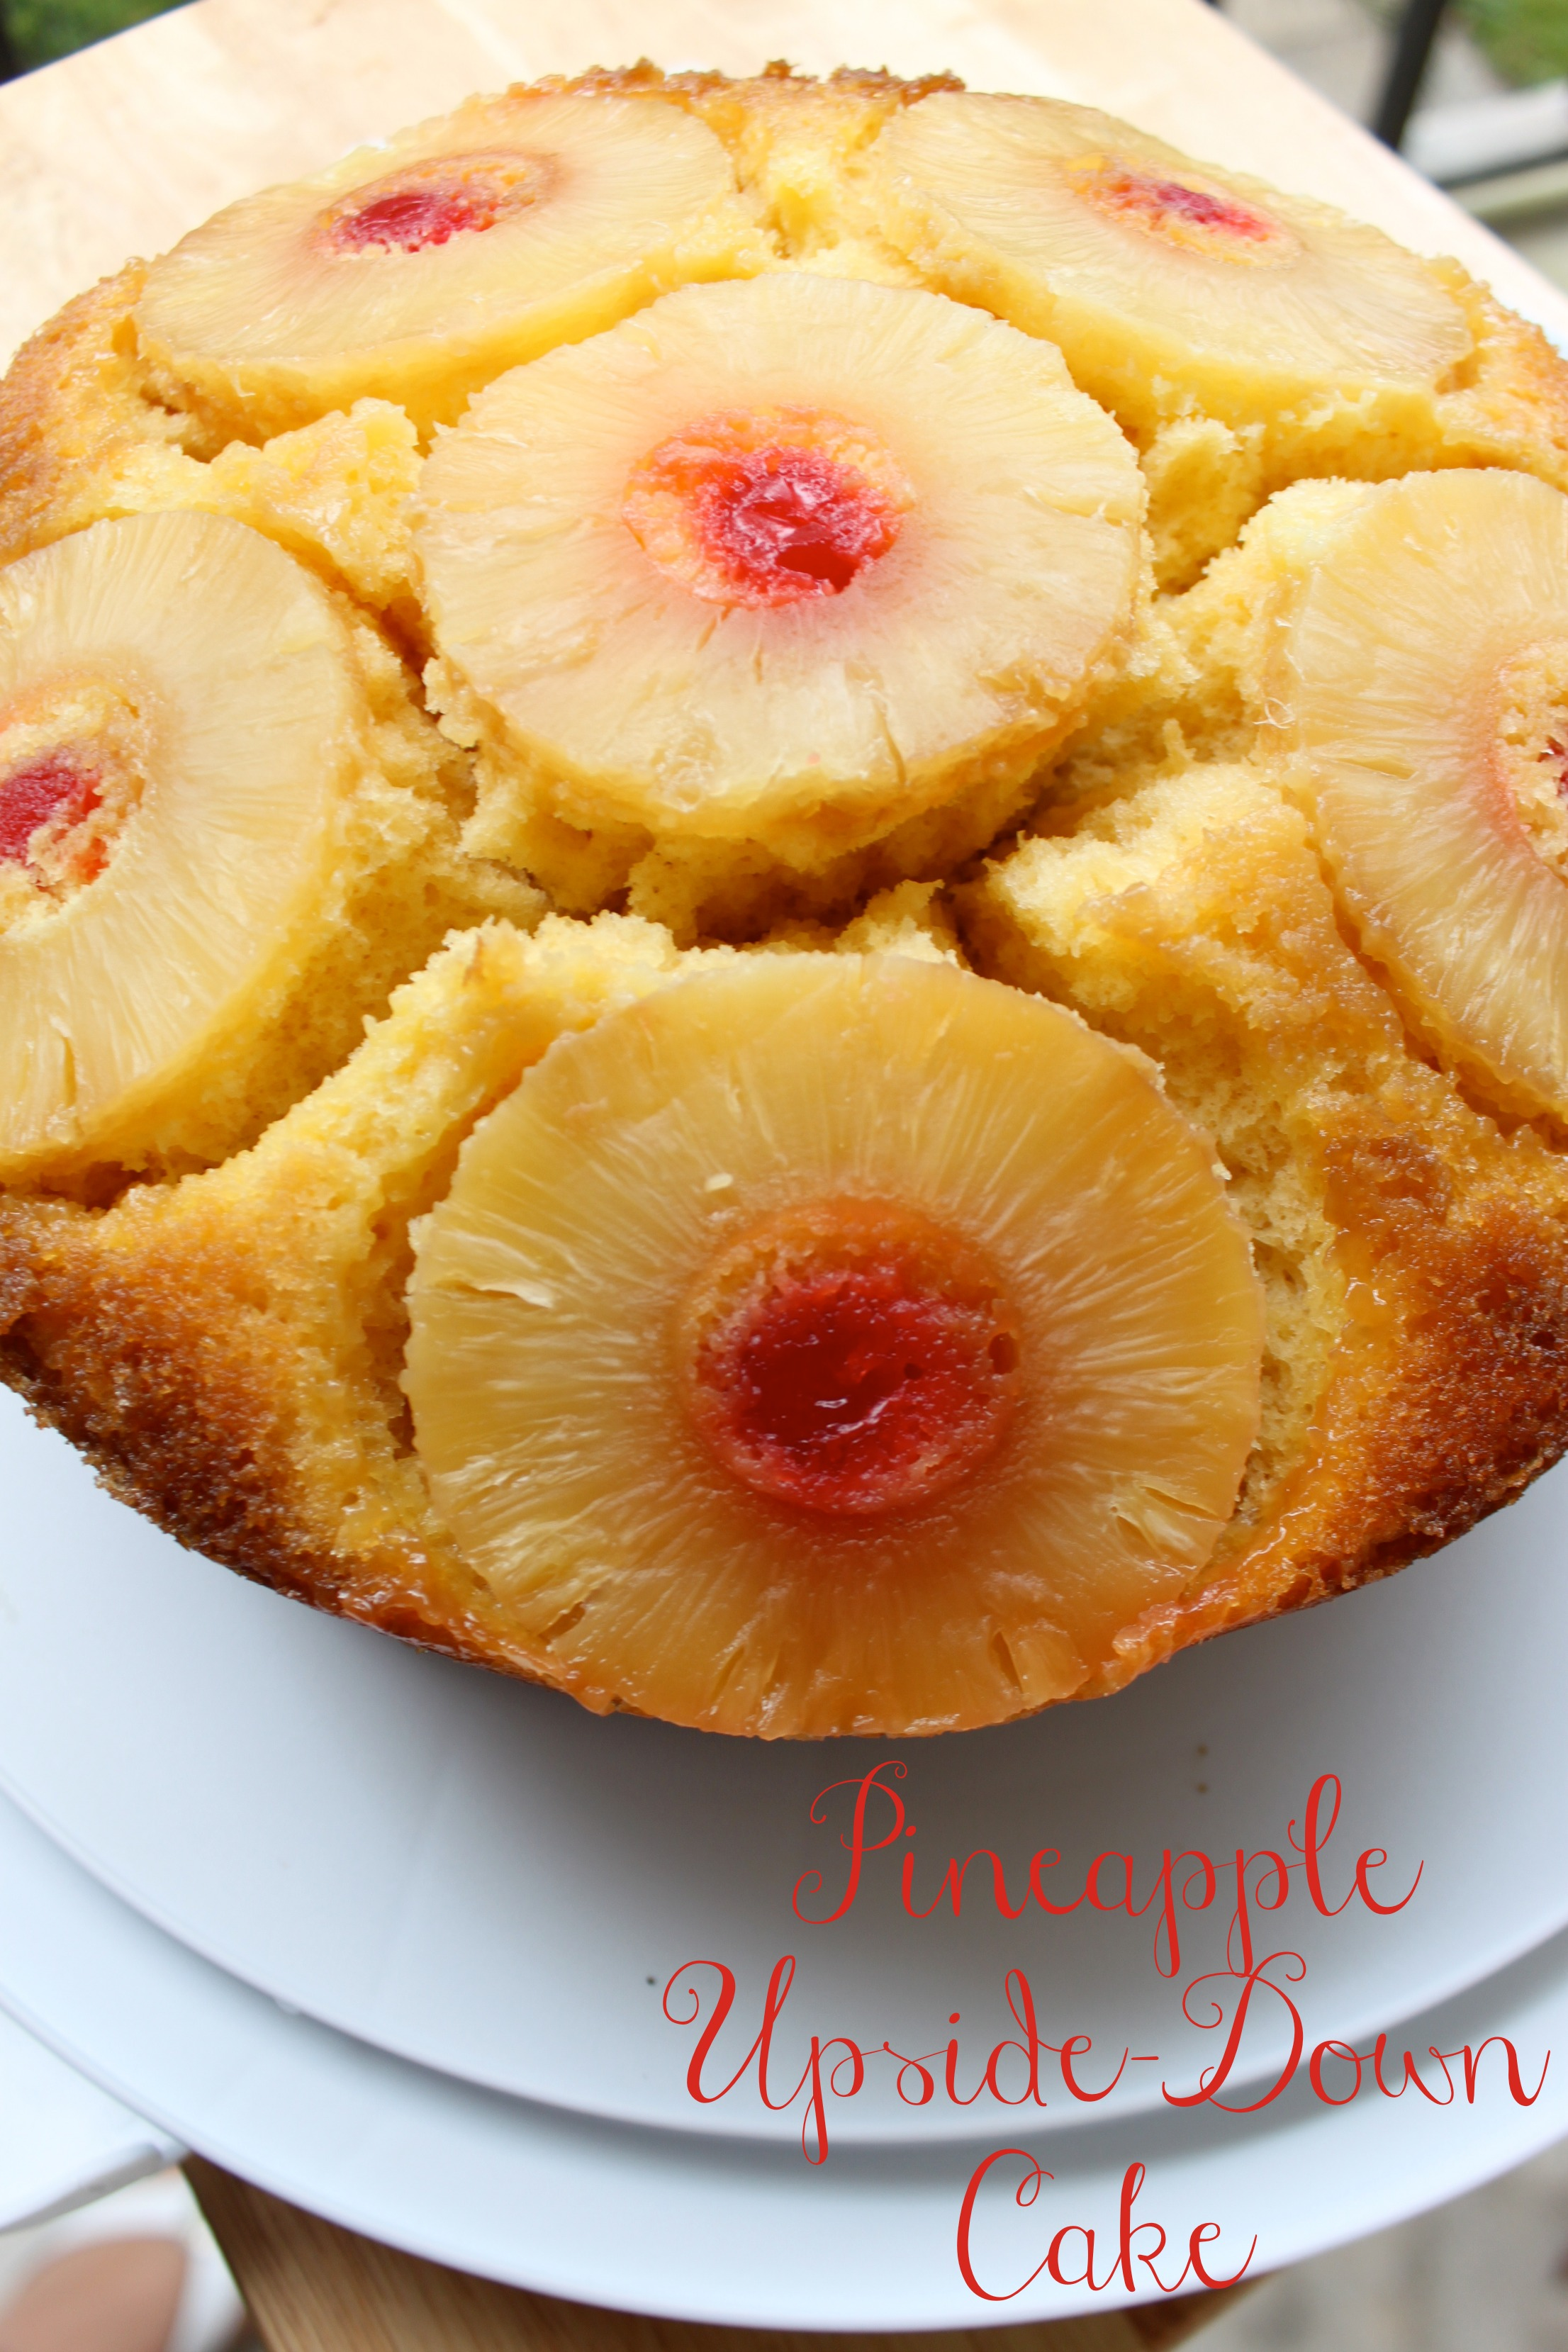 National Pineapple Upside-Down Cake Day | Pineapple Upside-Down Cake